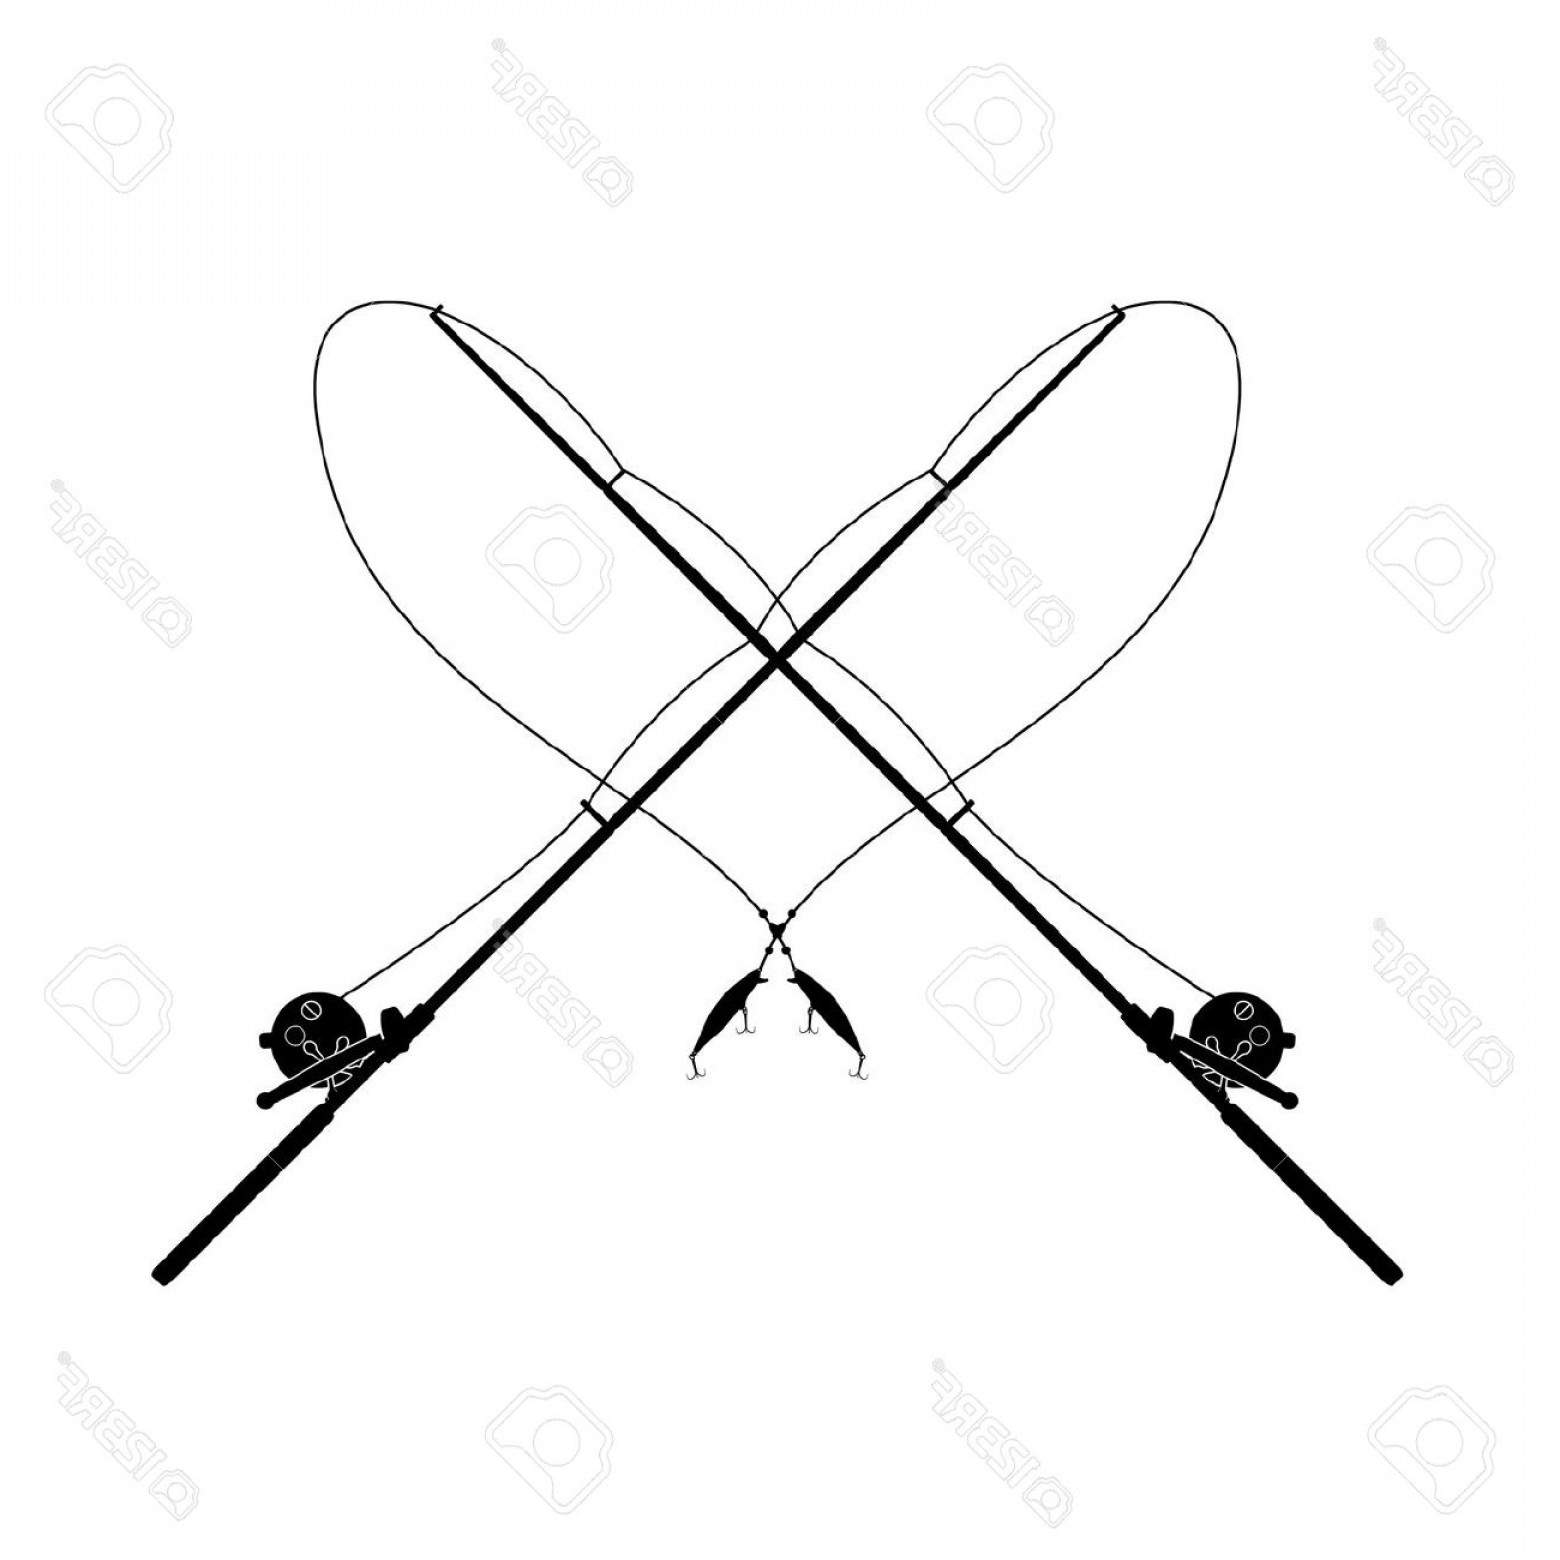 Fishing Pole Silhouette Vector: Fishing Pole Clipart Black And White